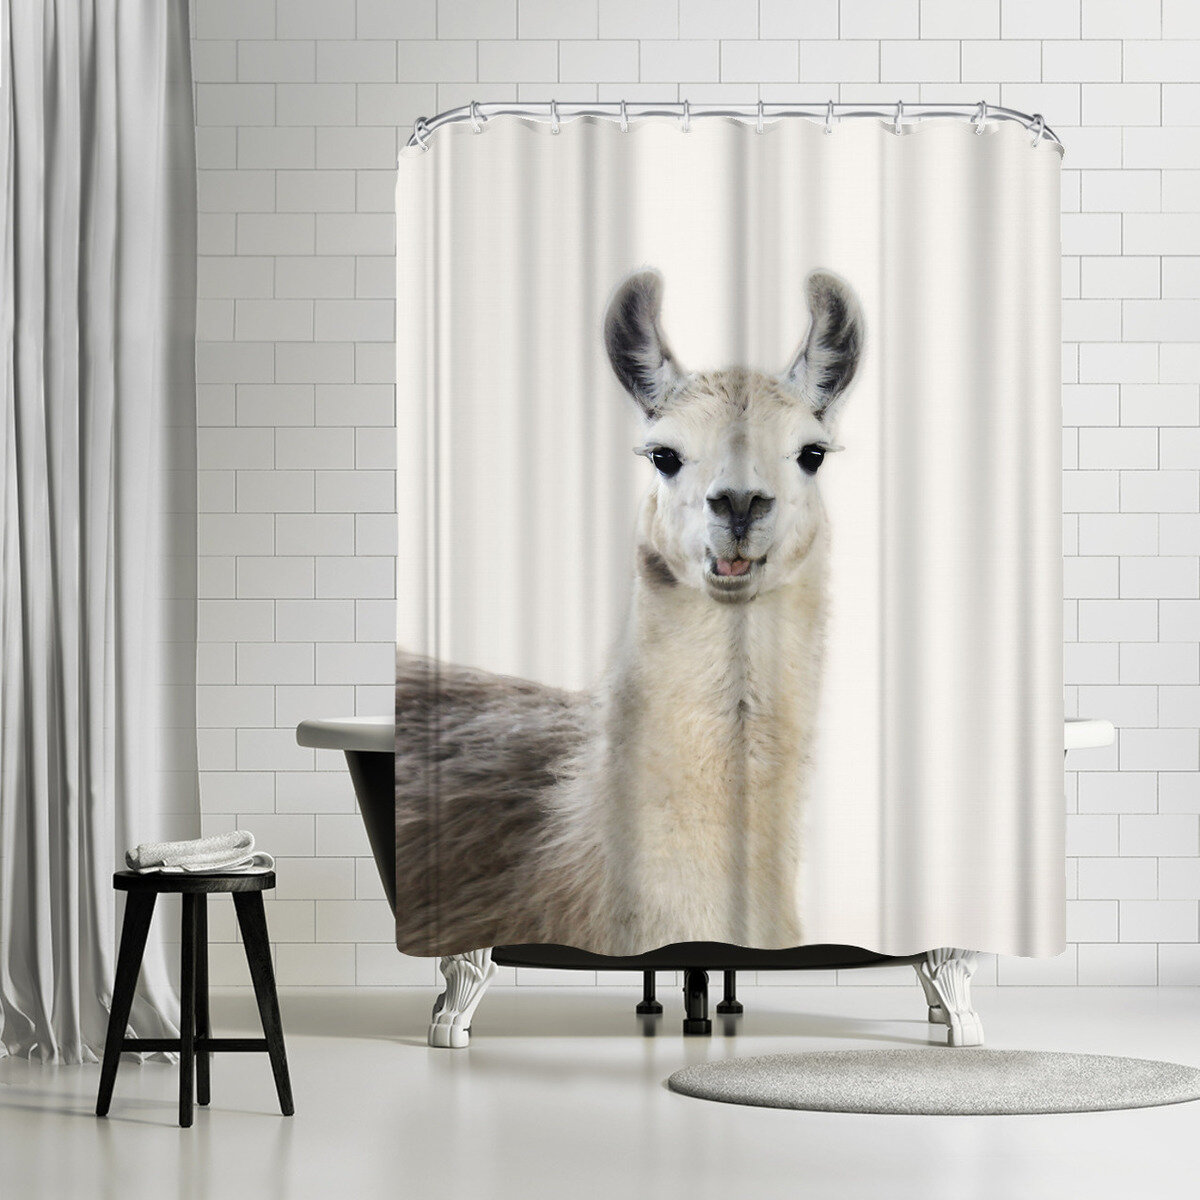 East Urban Home Sisi And Seb Funny Llama Single Shower Curtain Wayfair